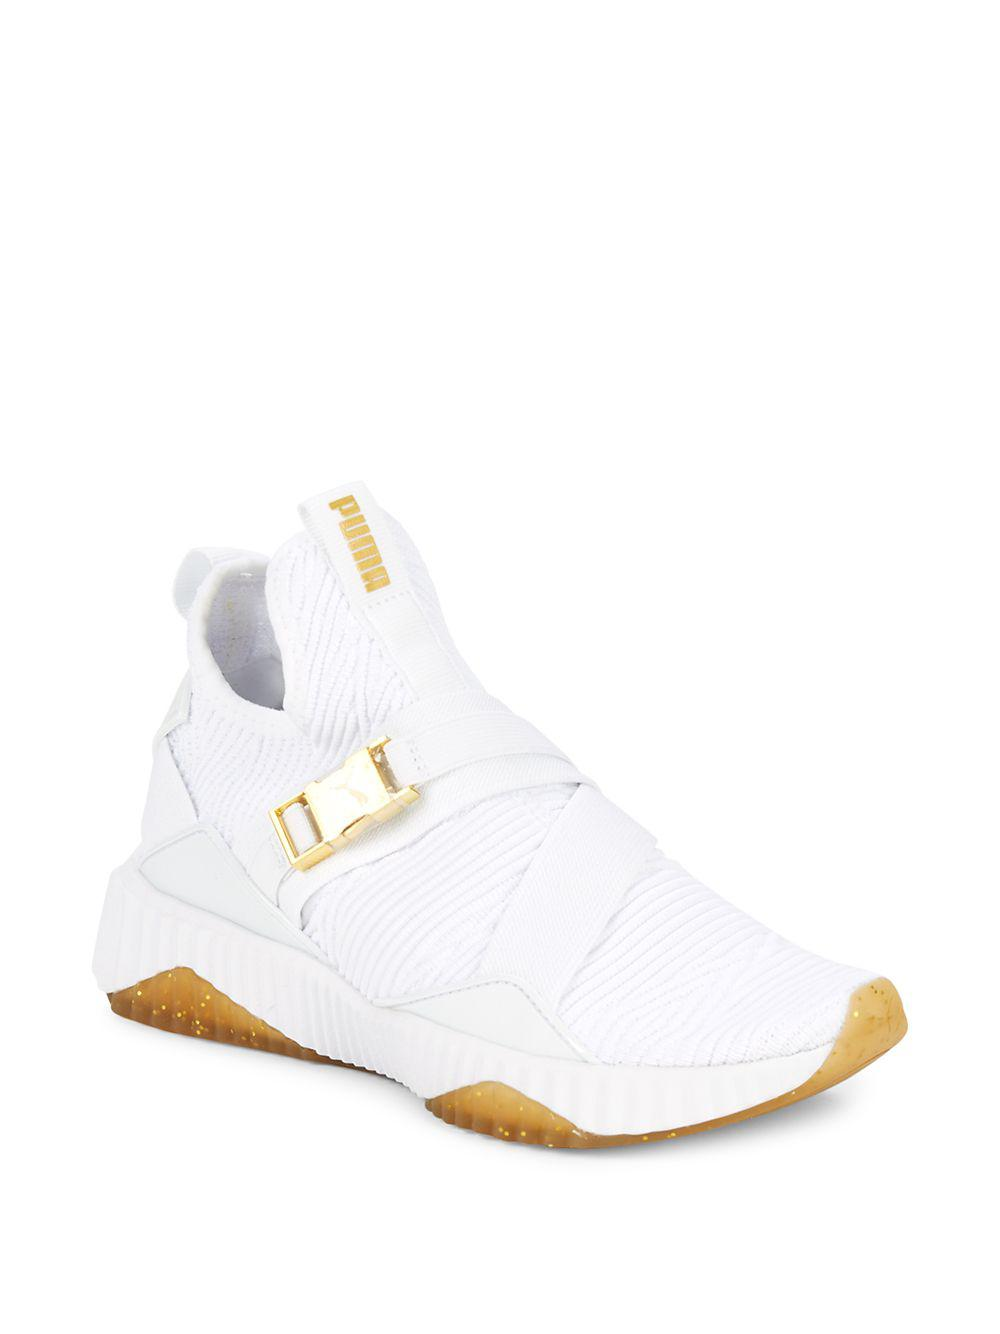 f9cfb0c5c88e41 Puma Defy Mid-top Sneakers in White - Lyst